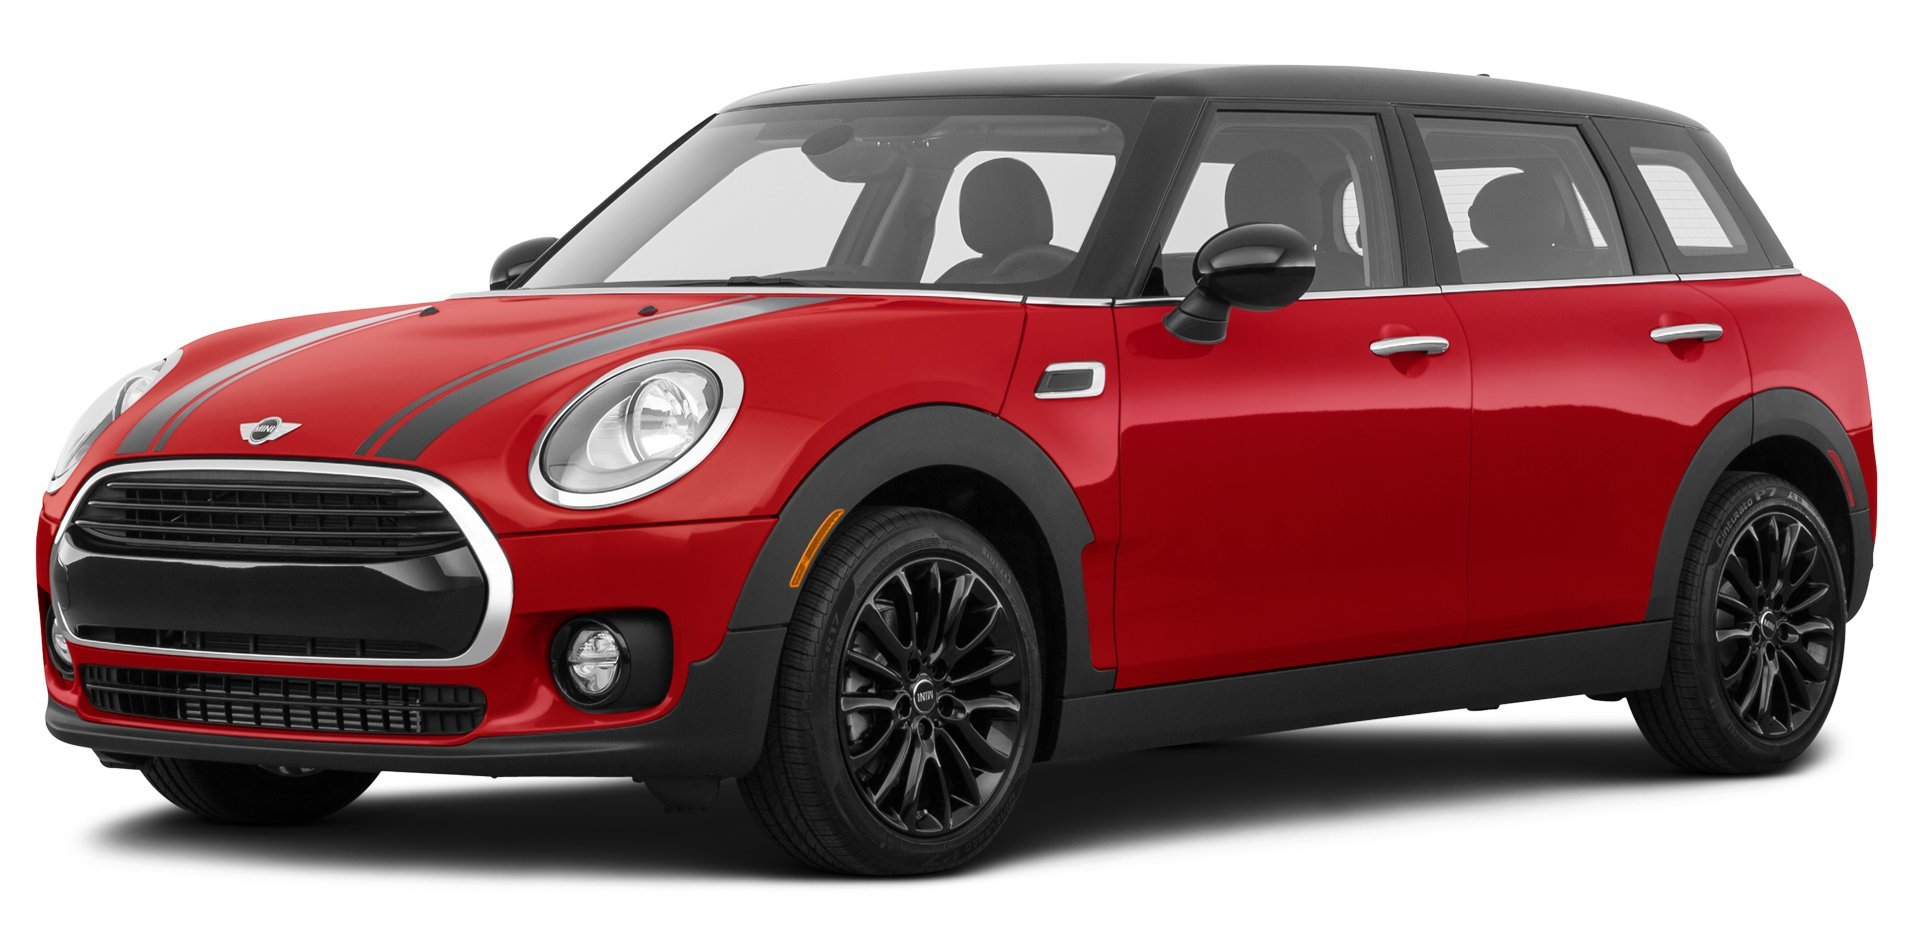 2017 mini cooper clubman reviews images and specs vehicles. Black Bedroom Furniture Sets. Home Design Ideas